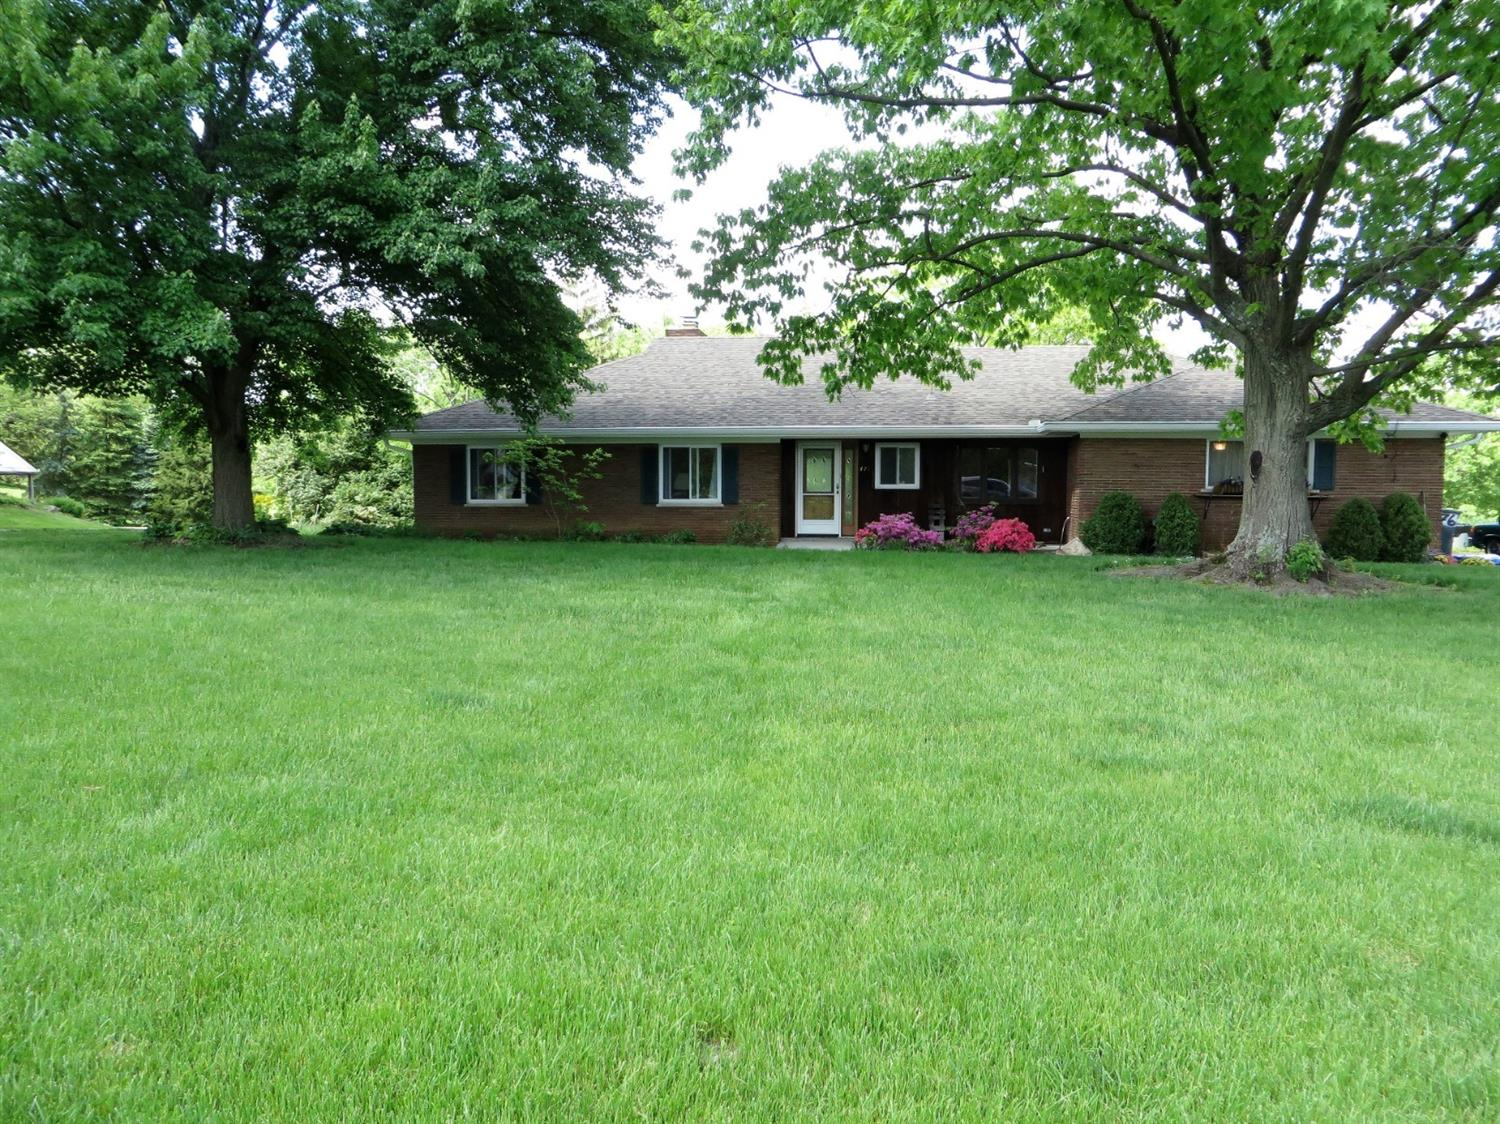 Photo 1 for 476 Beechtree Dr Finneytown, OH 45224